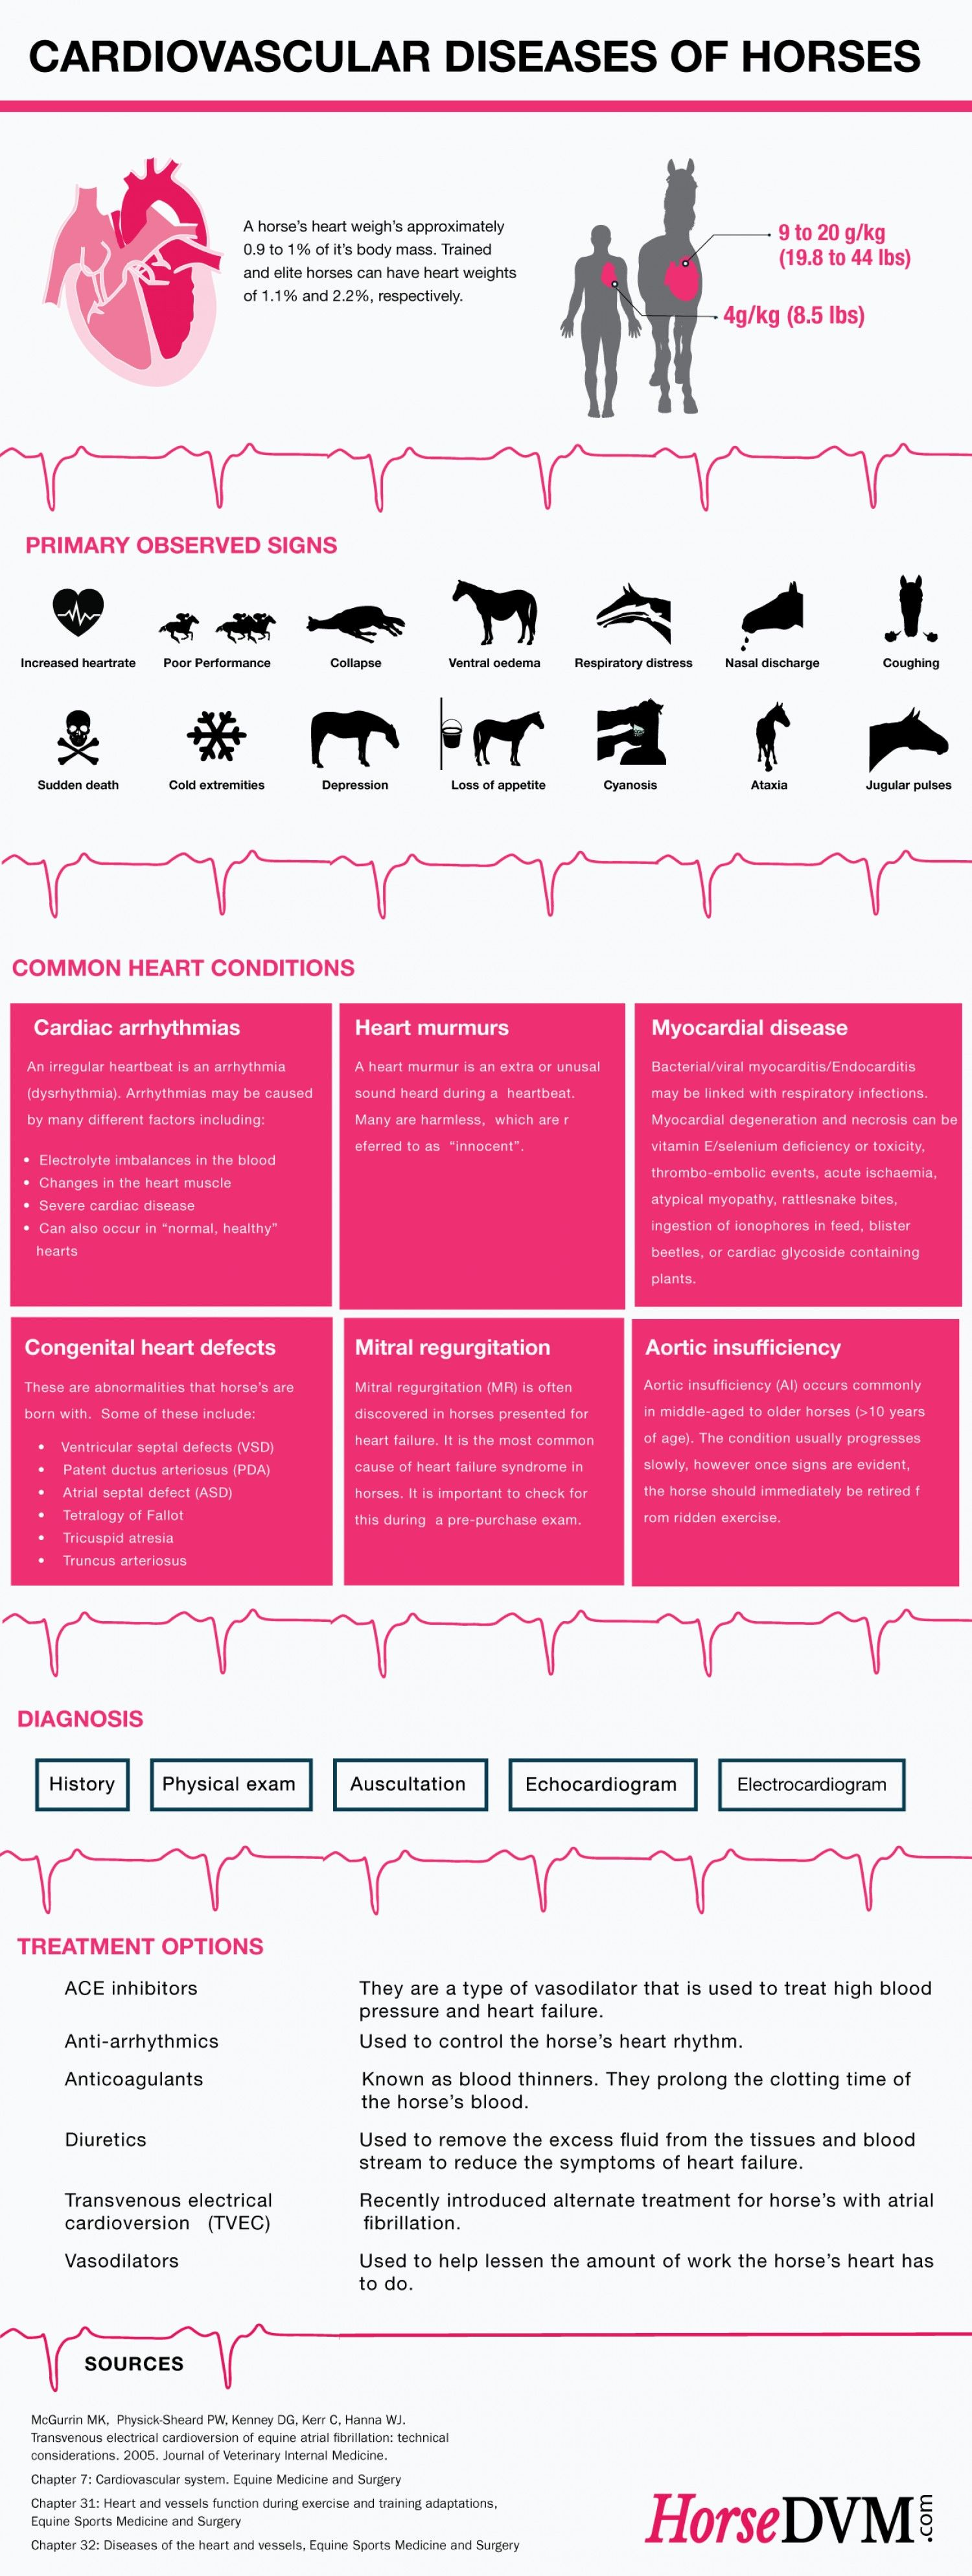 Cardiovascular Diseases of Horses Infographic by HorseDVM